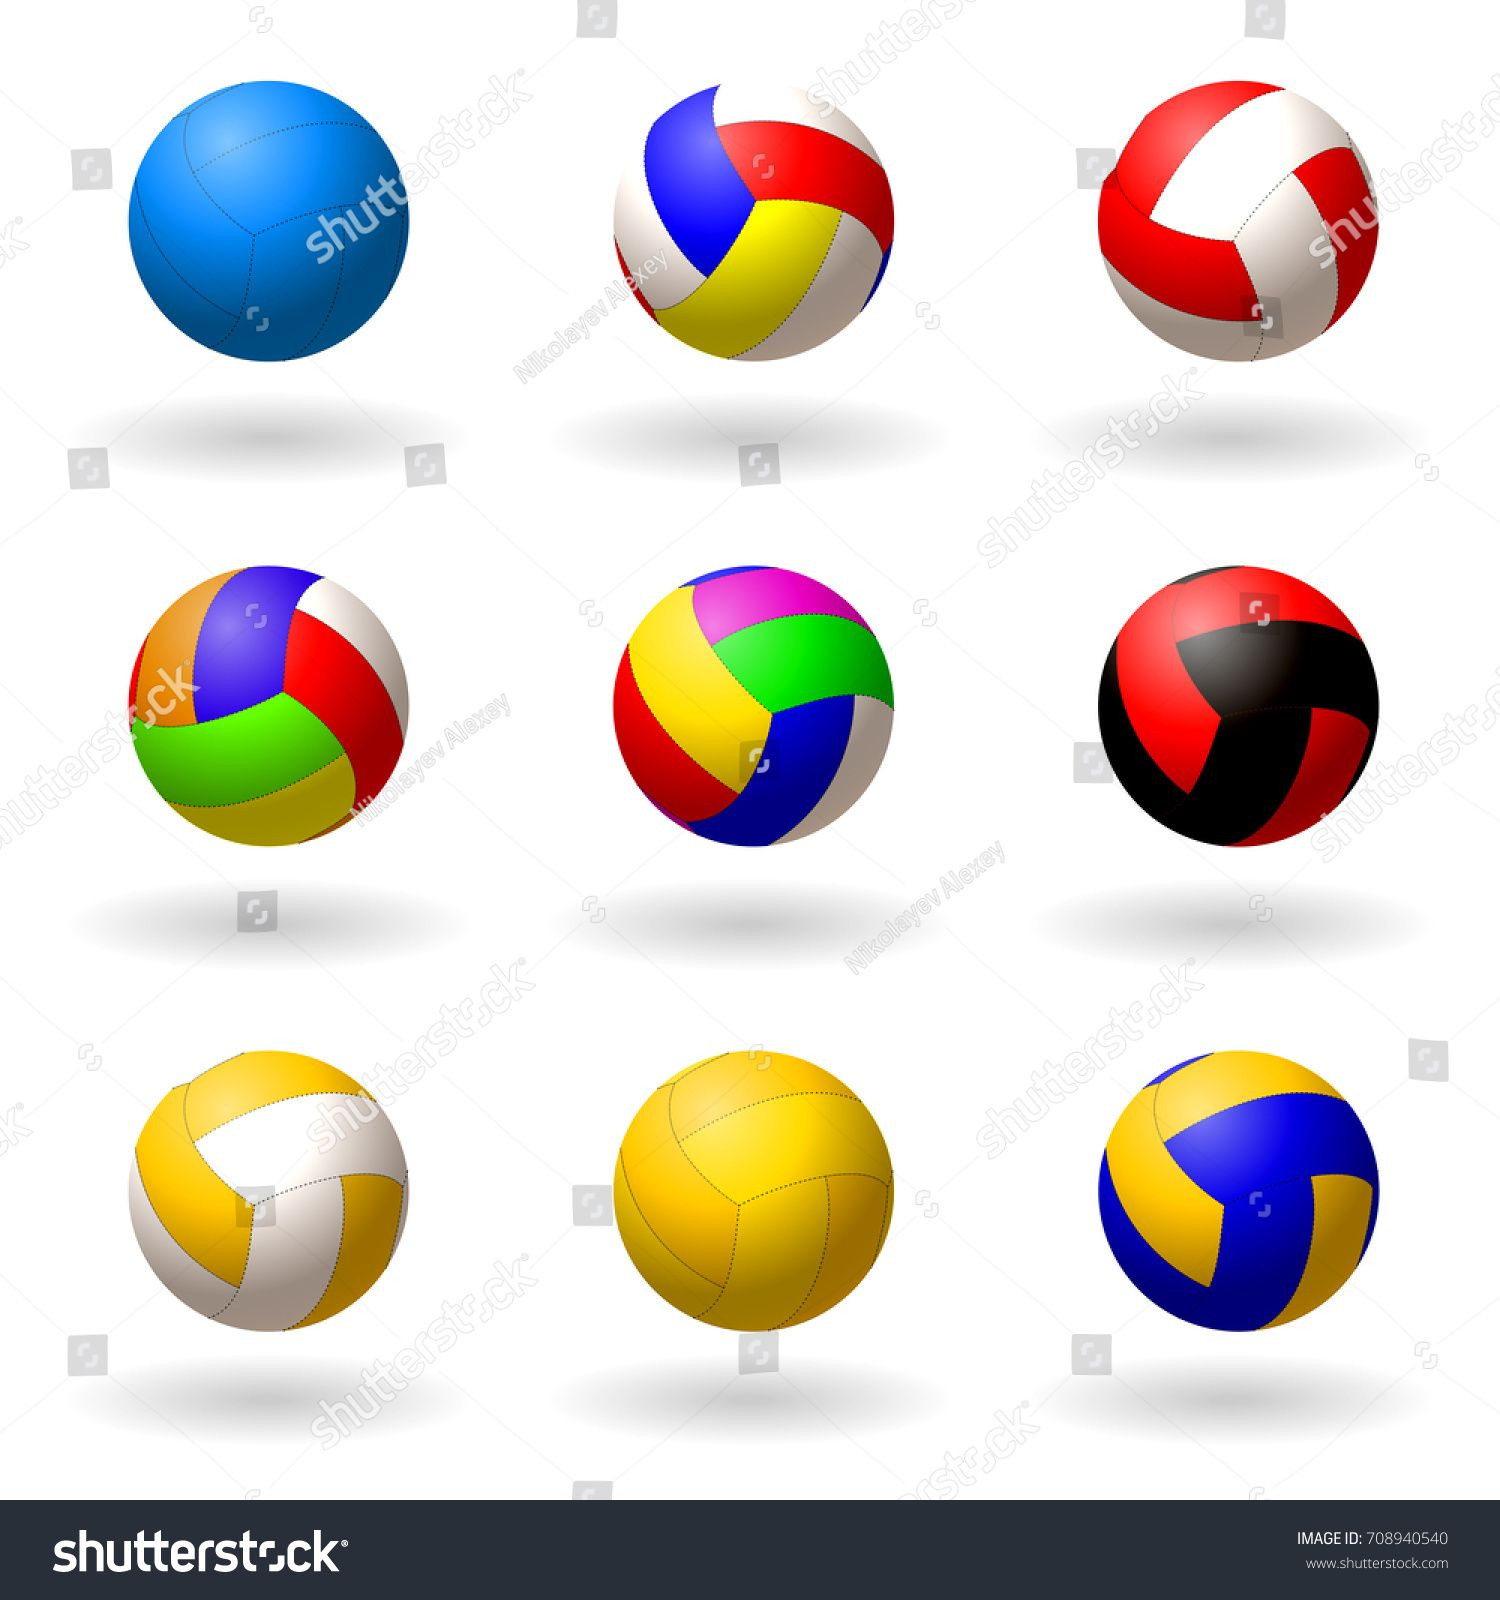 Ball For Volleyball Set Of Multi Colored Balls For Volleyball Pioneerball Handball Sport And Recreation Objects On Whi Volleyball Set Ball Abstract Design